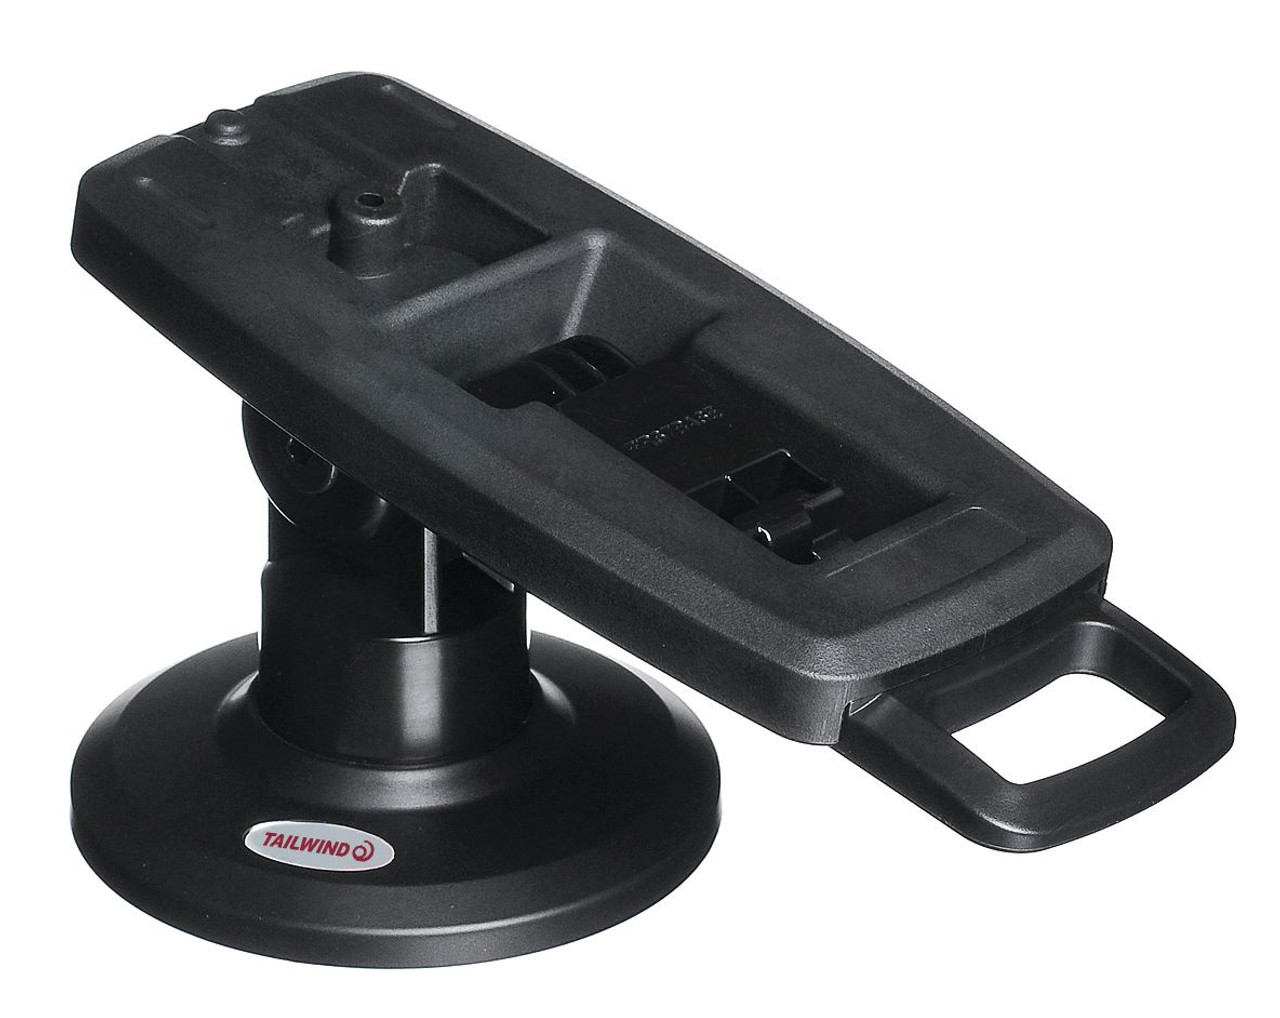 Verifone P200 or P400 FlexiPole FirstBase Compact Stand